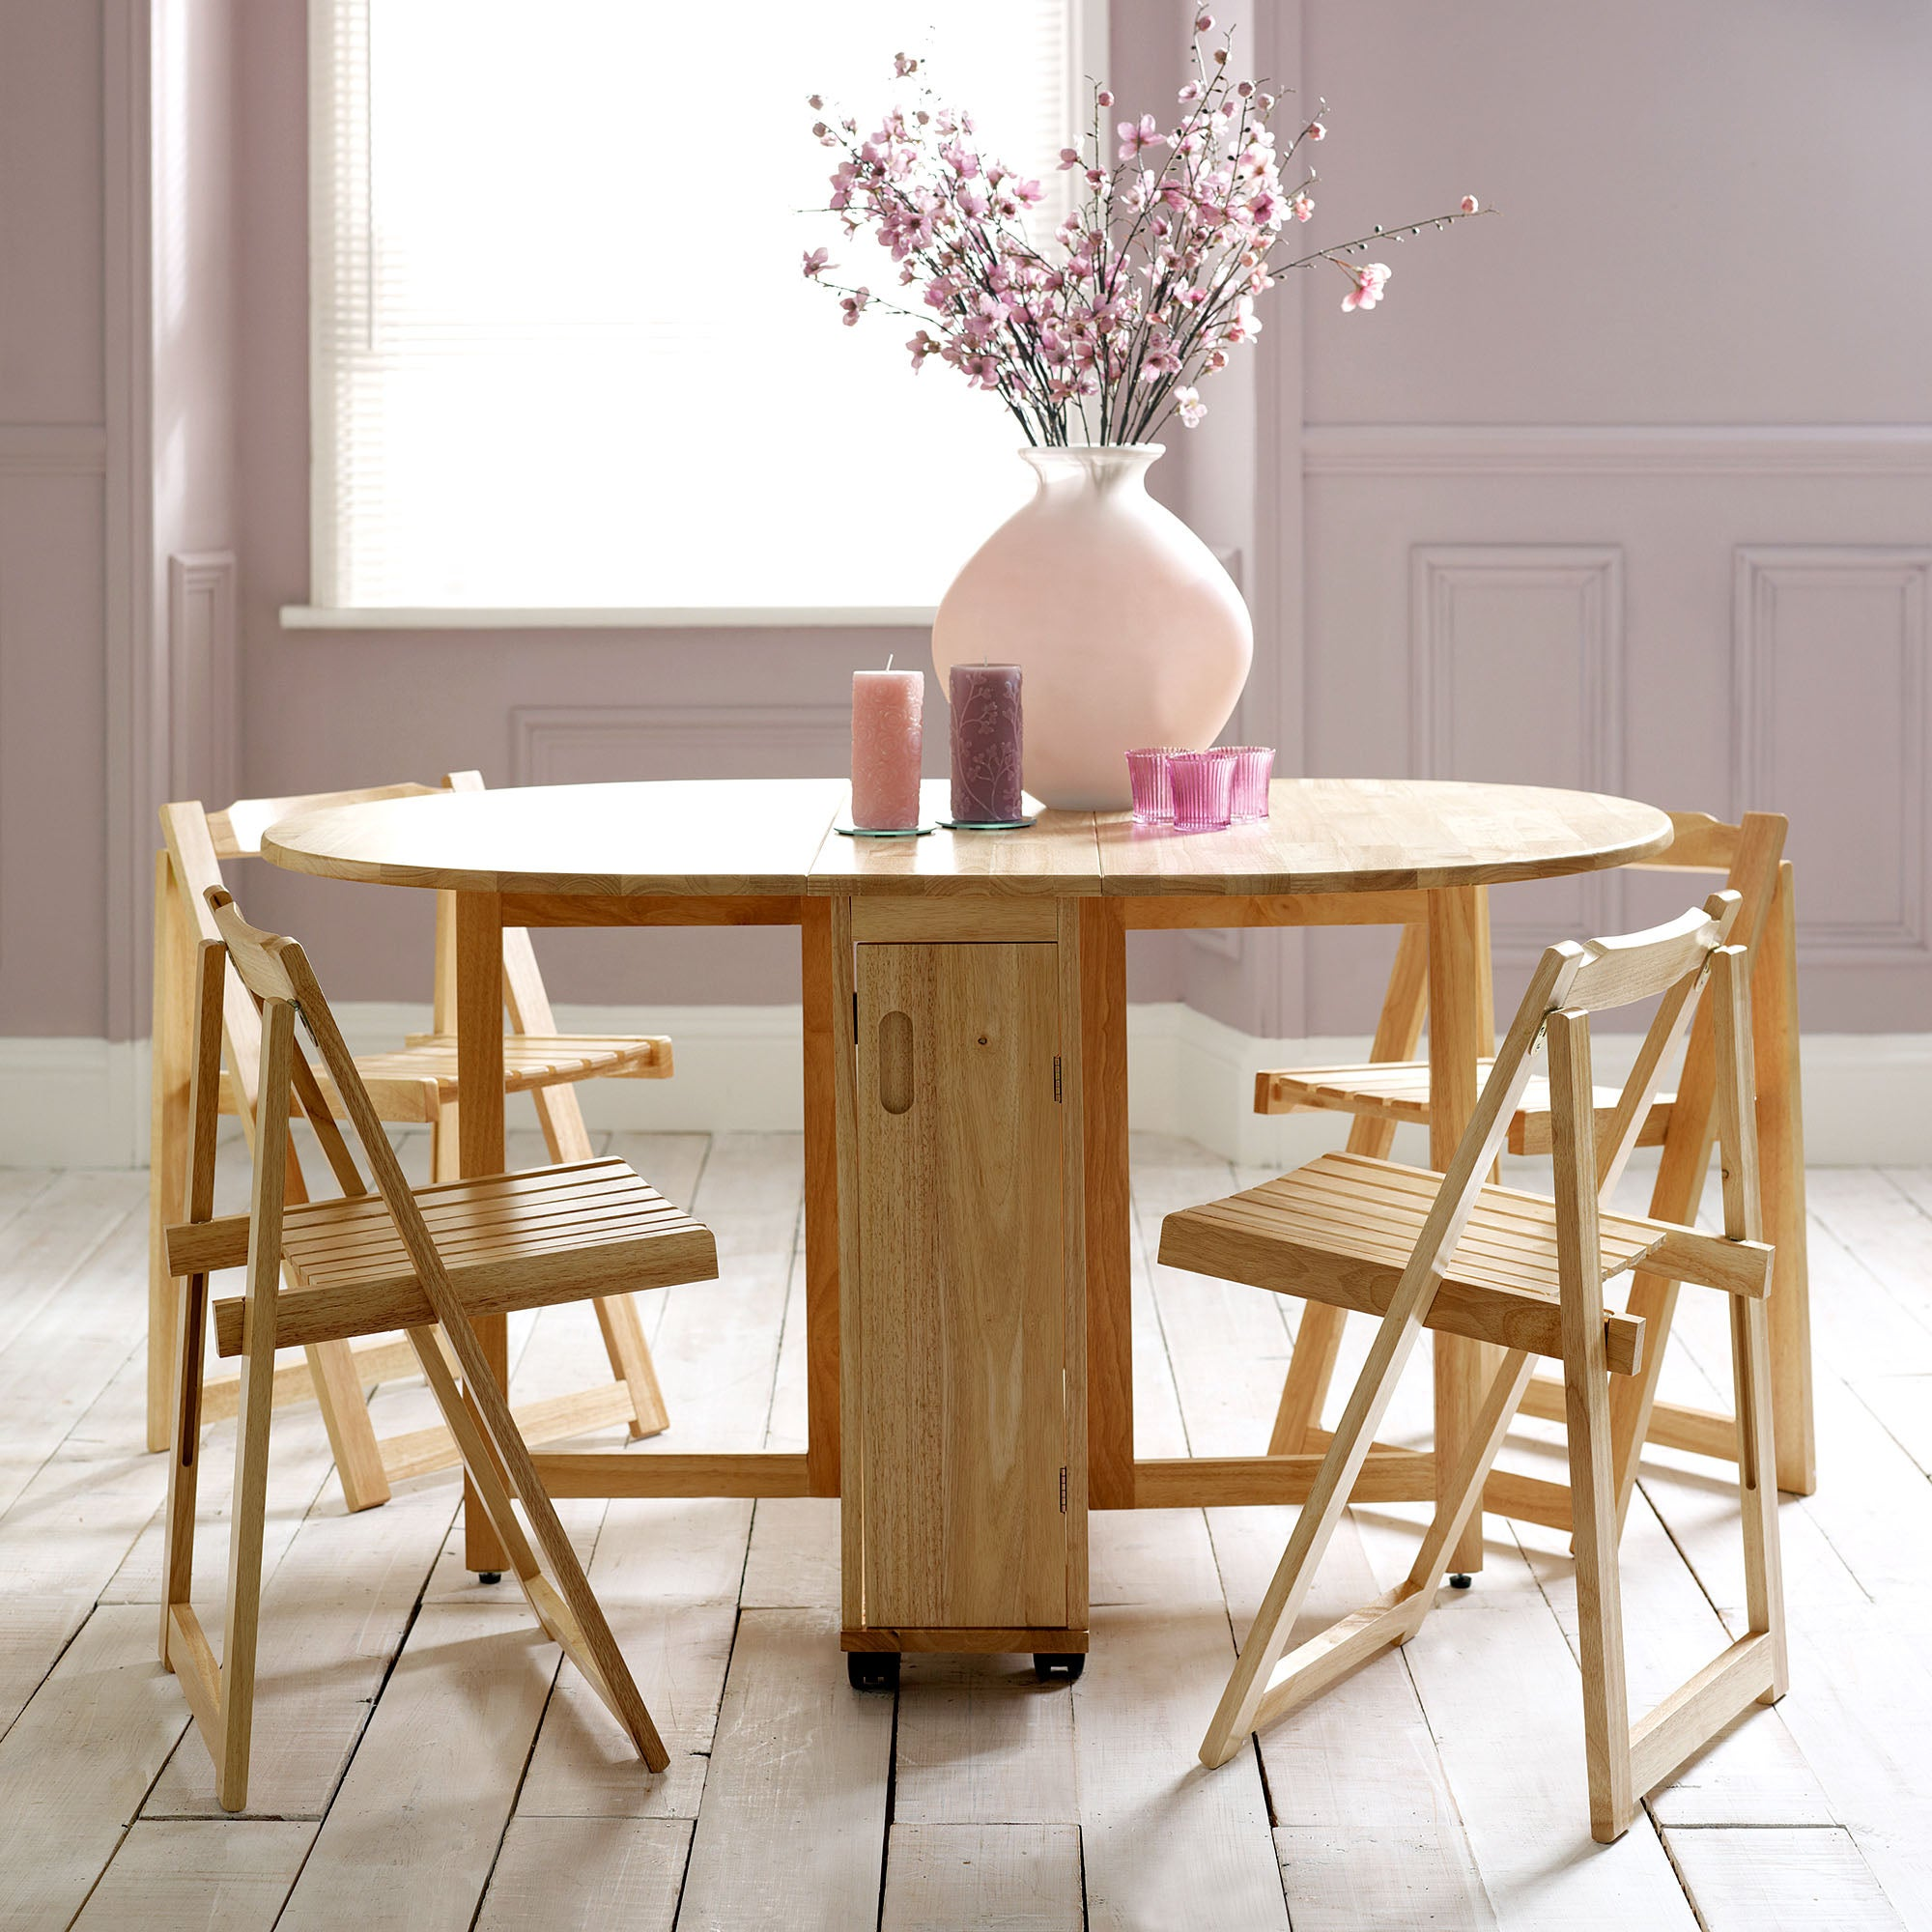 rubberwood butterfly table with 4 chairs dunelm